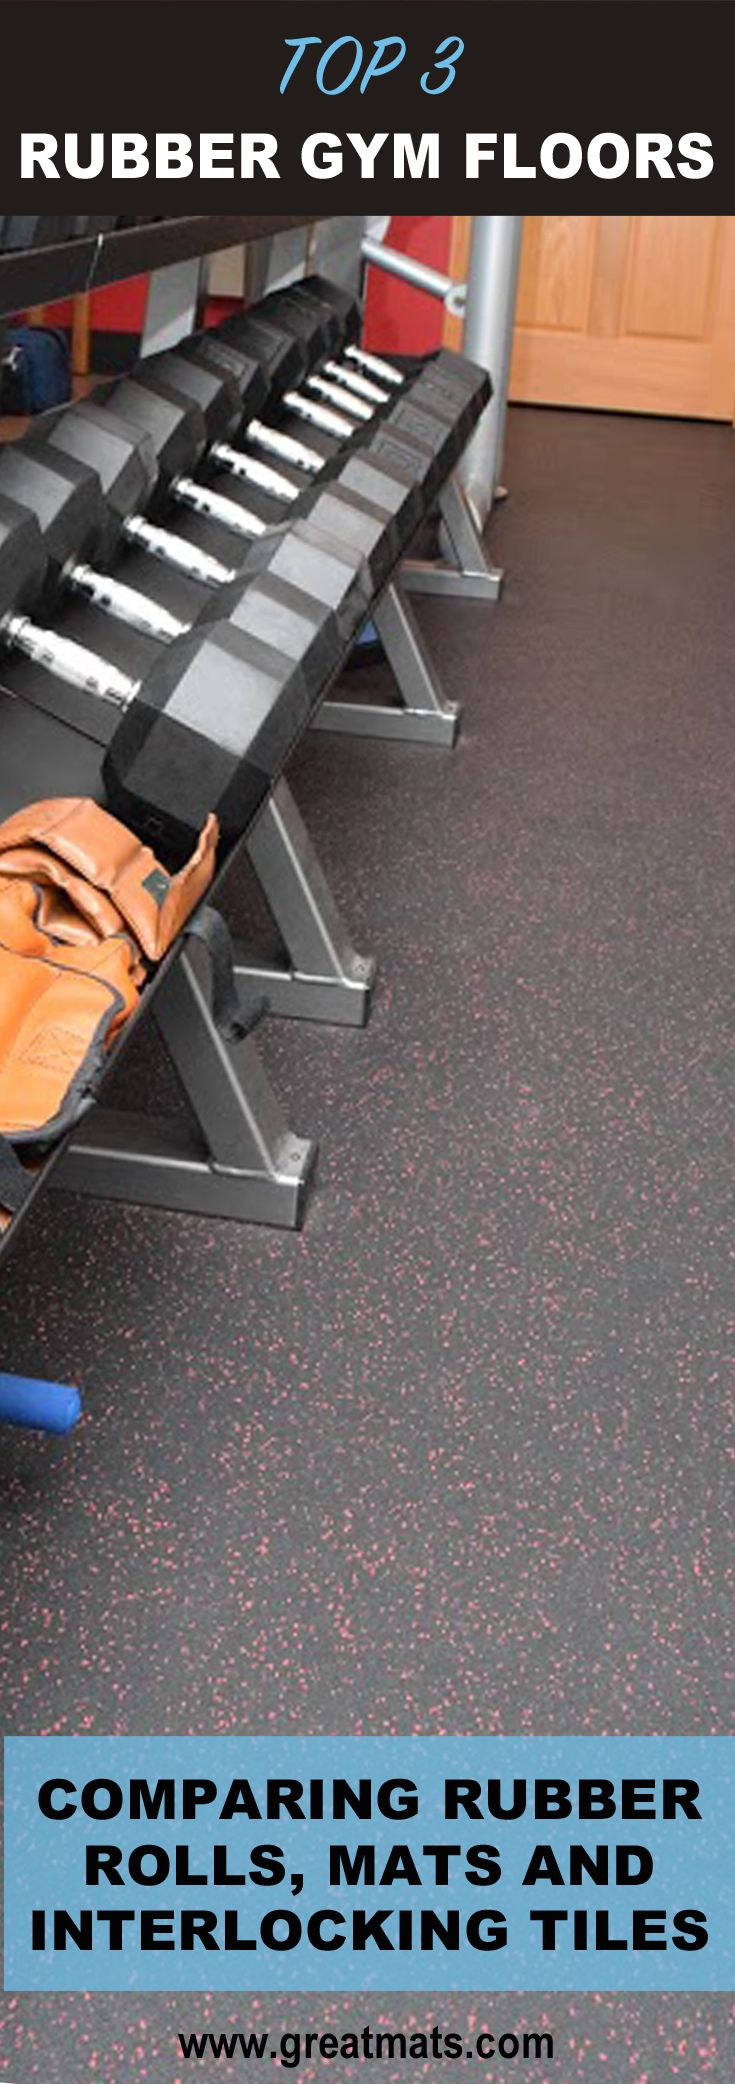 Rubber Flooring Rolls vs. Rubber Stall Mats vs. Interlocking Rubber Tiles for Gym Floors. Learn when and where each is appropriate.